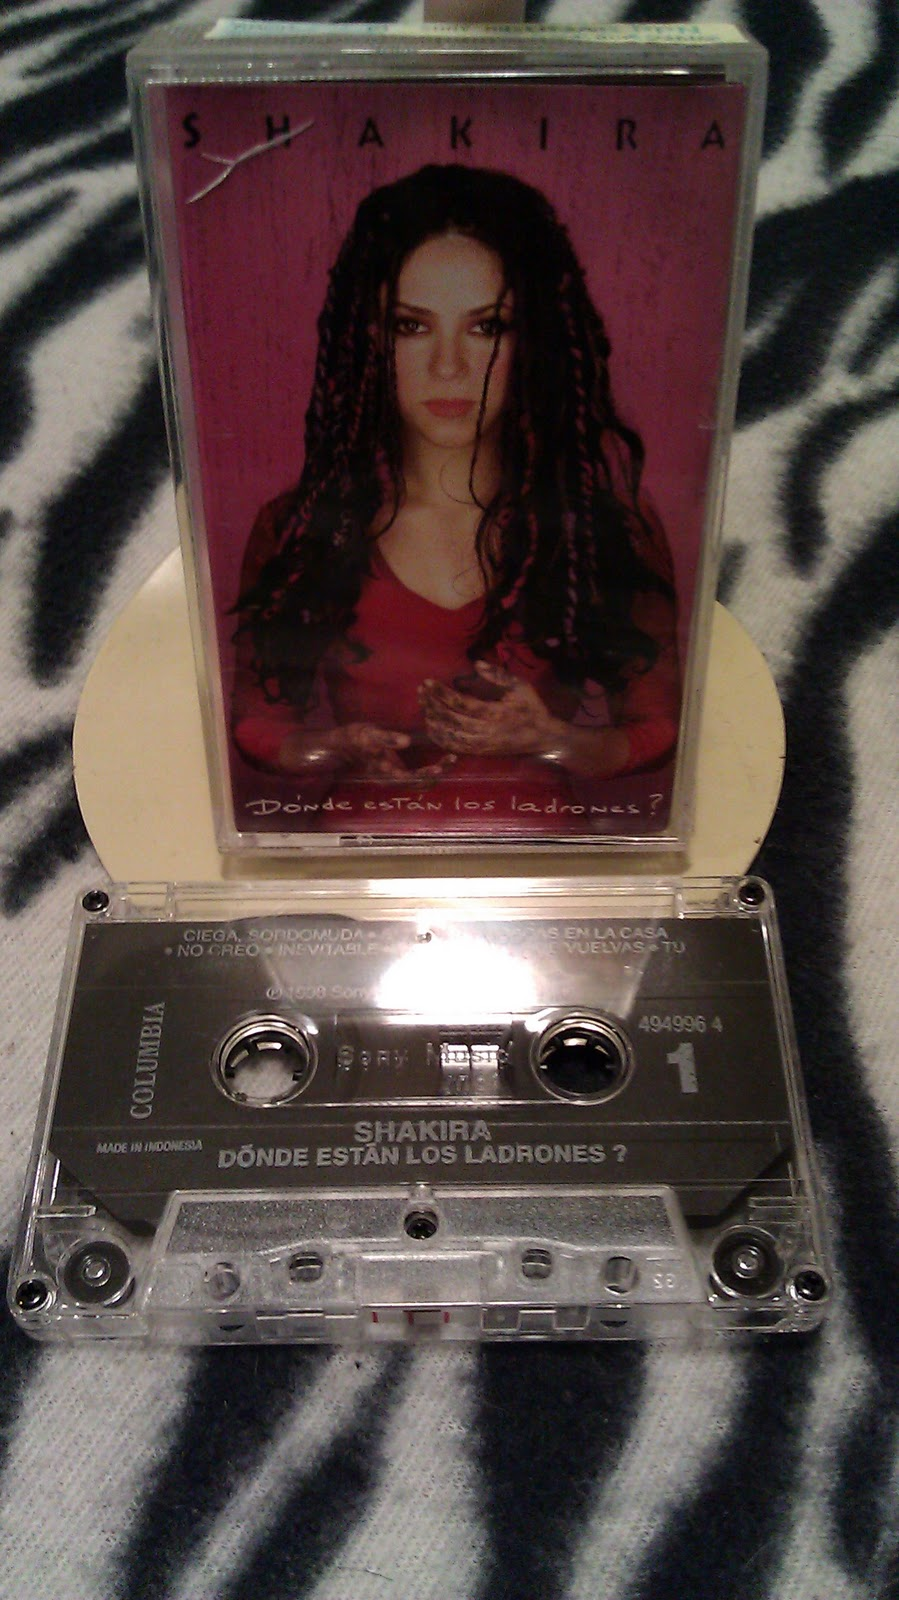 My Shakira Collections Cassette